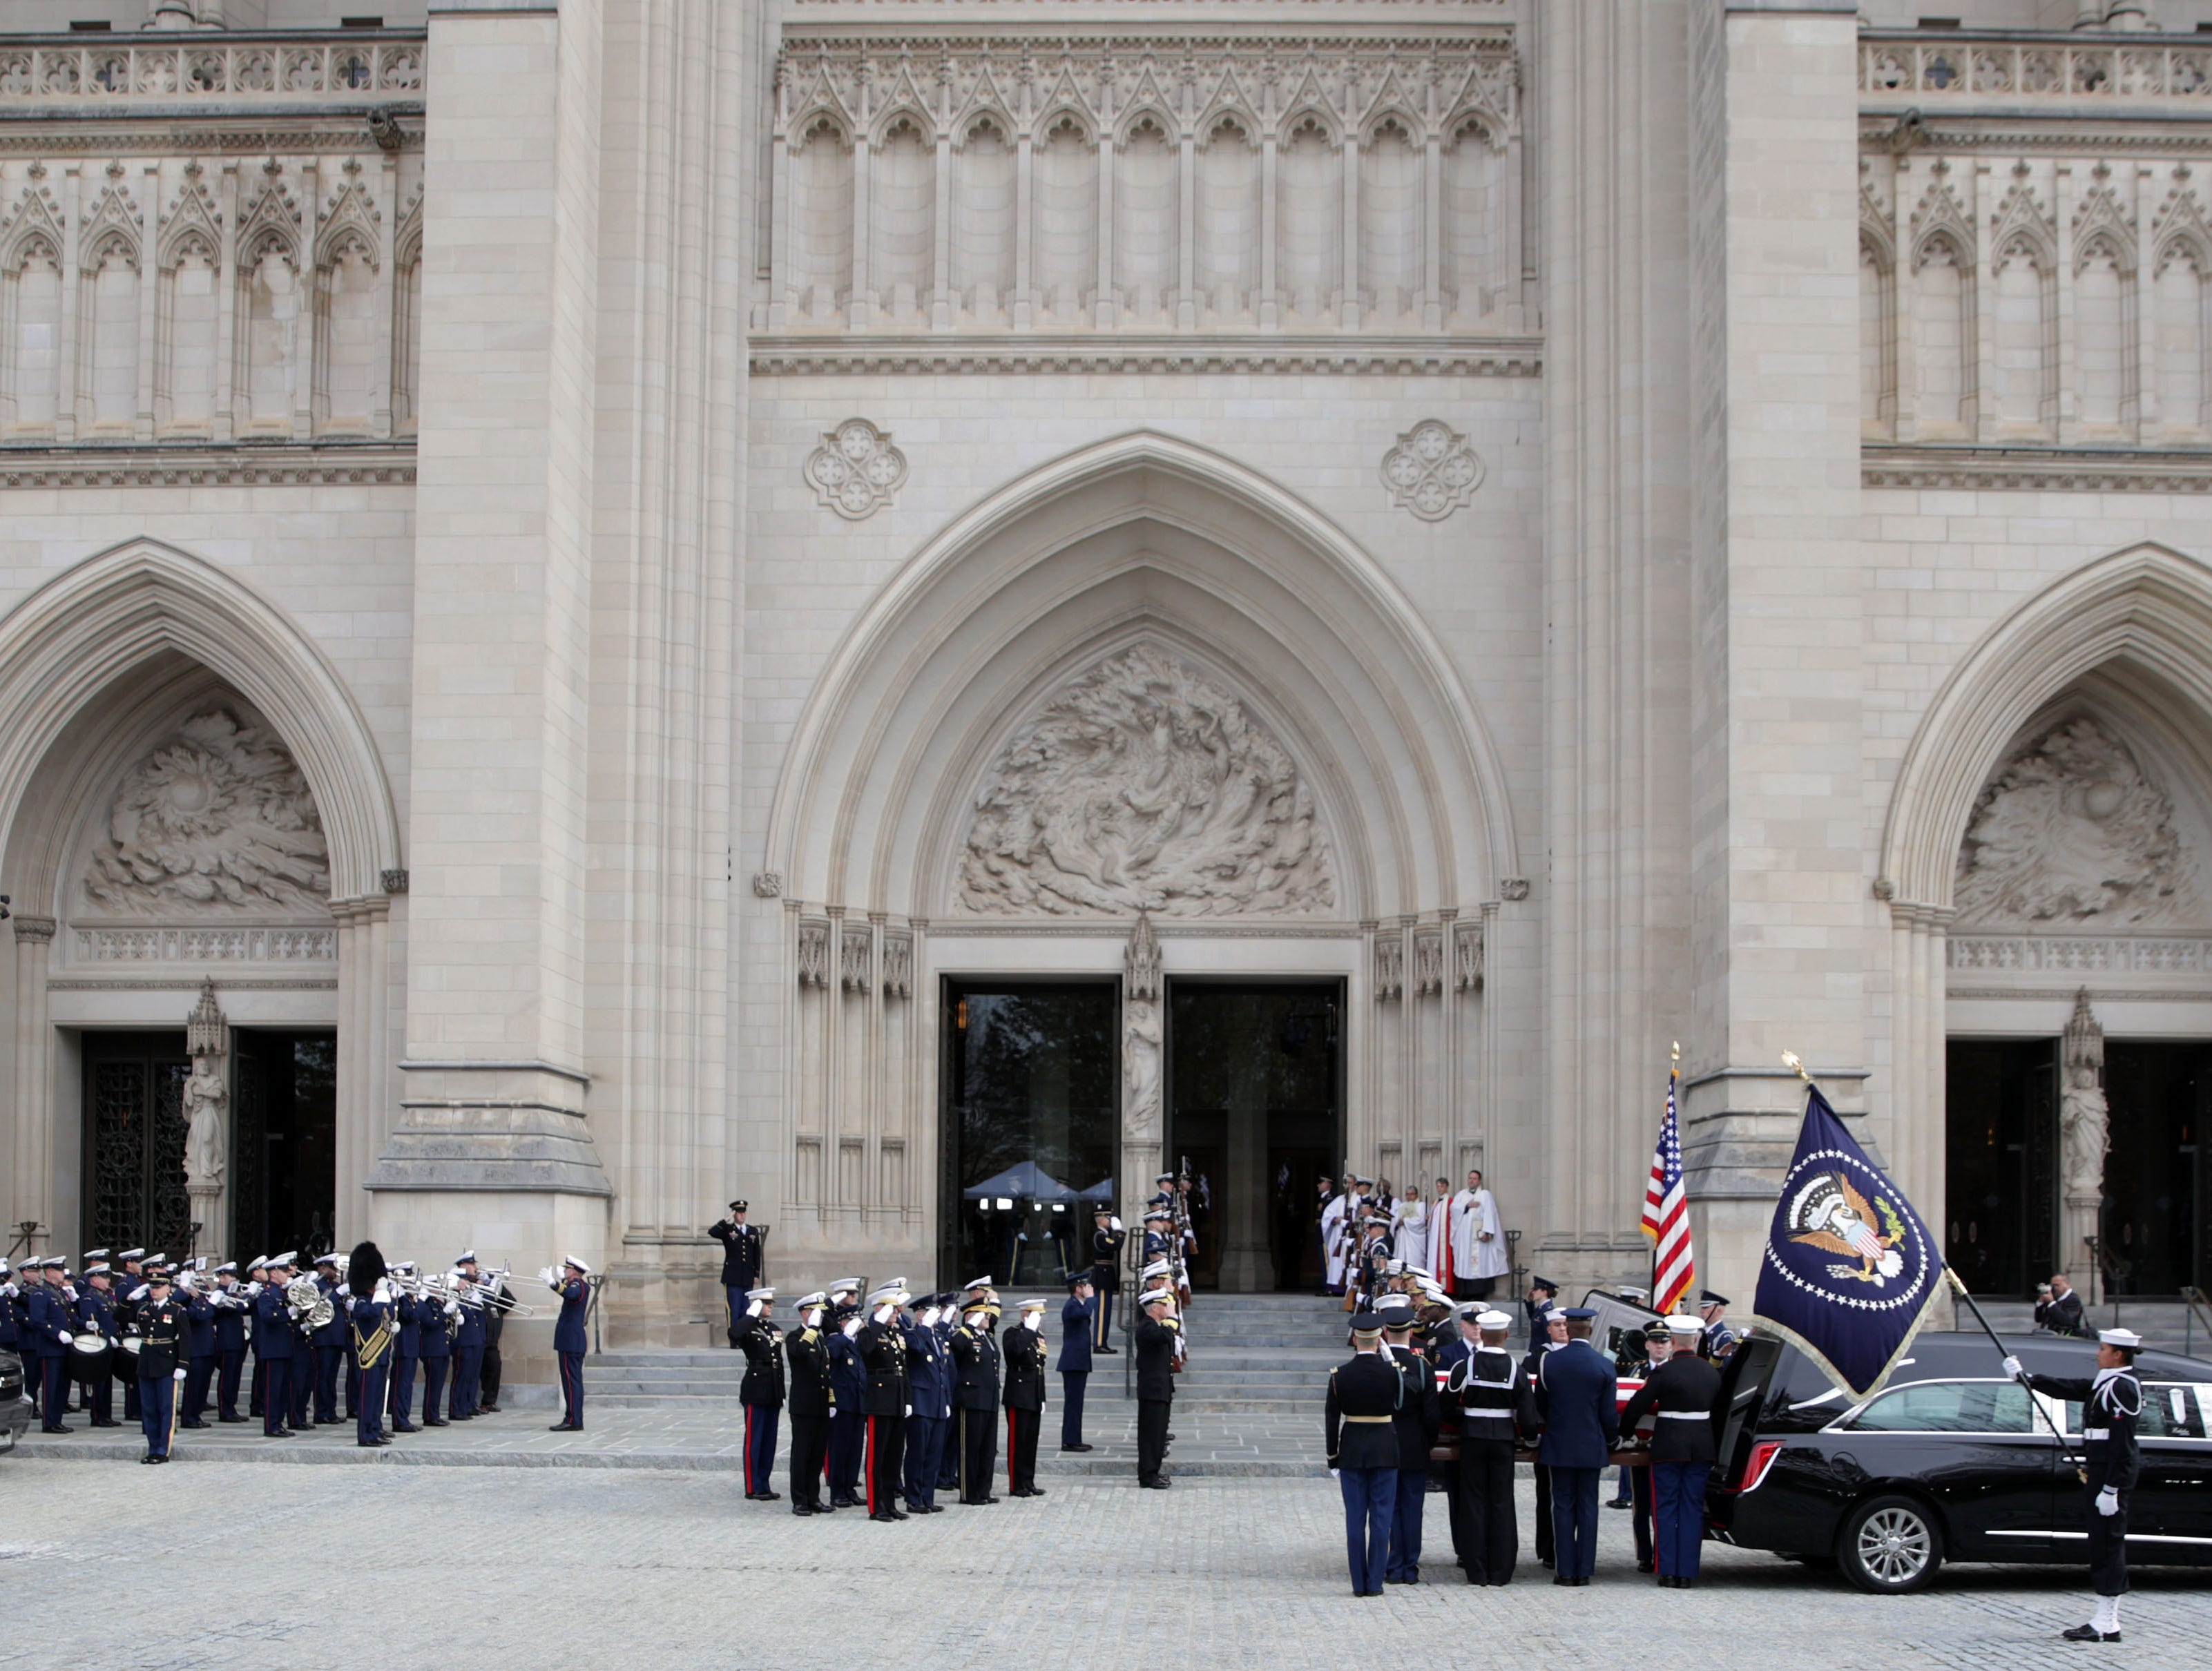 A joint service honor guard carries the casket of former President George H.W. Bush to an awaiting hearse after the service.